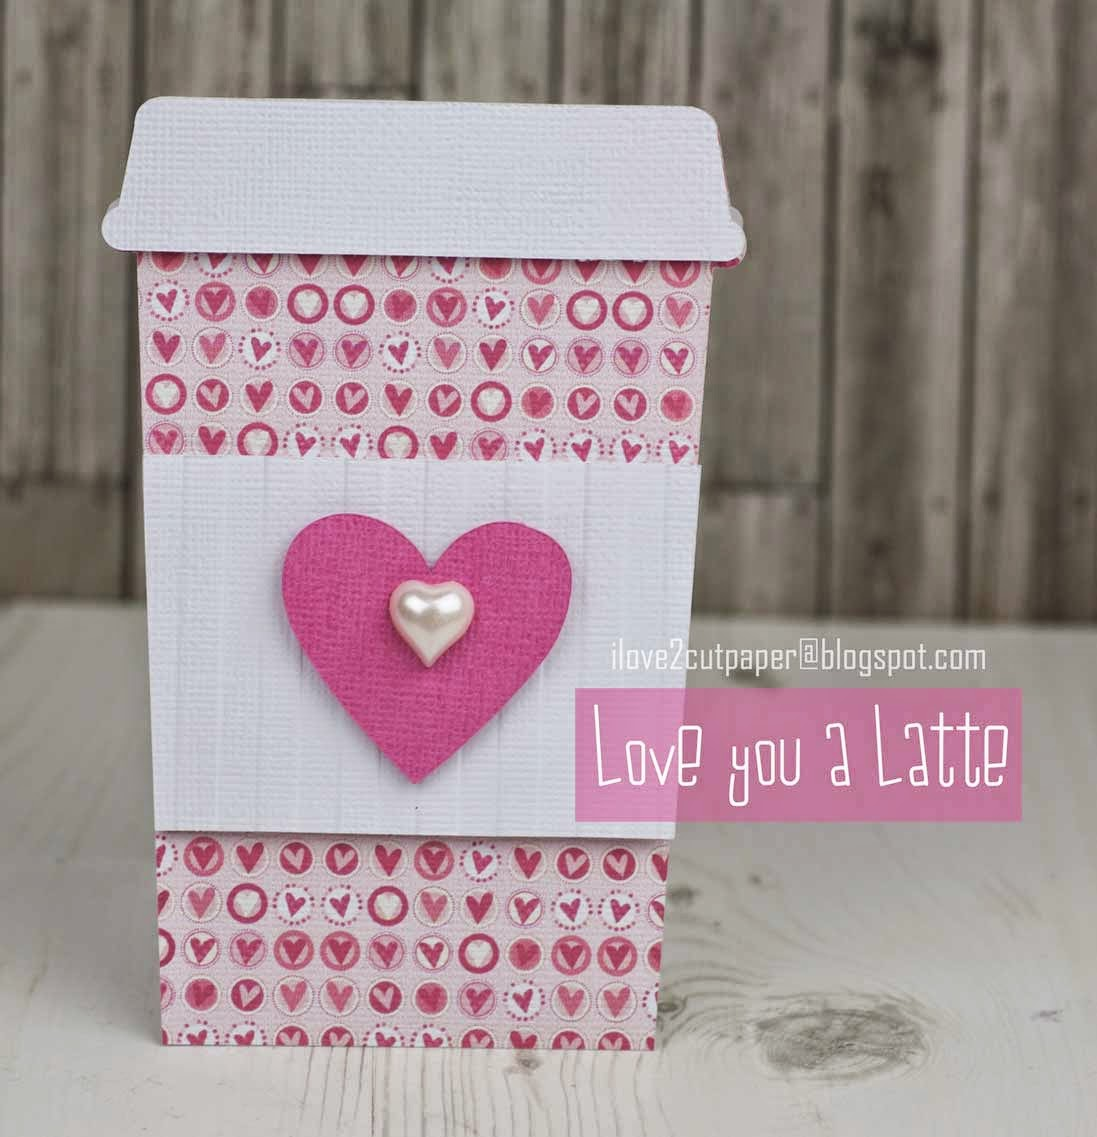 Latte shaped card